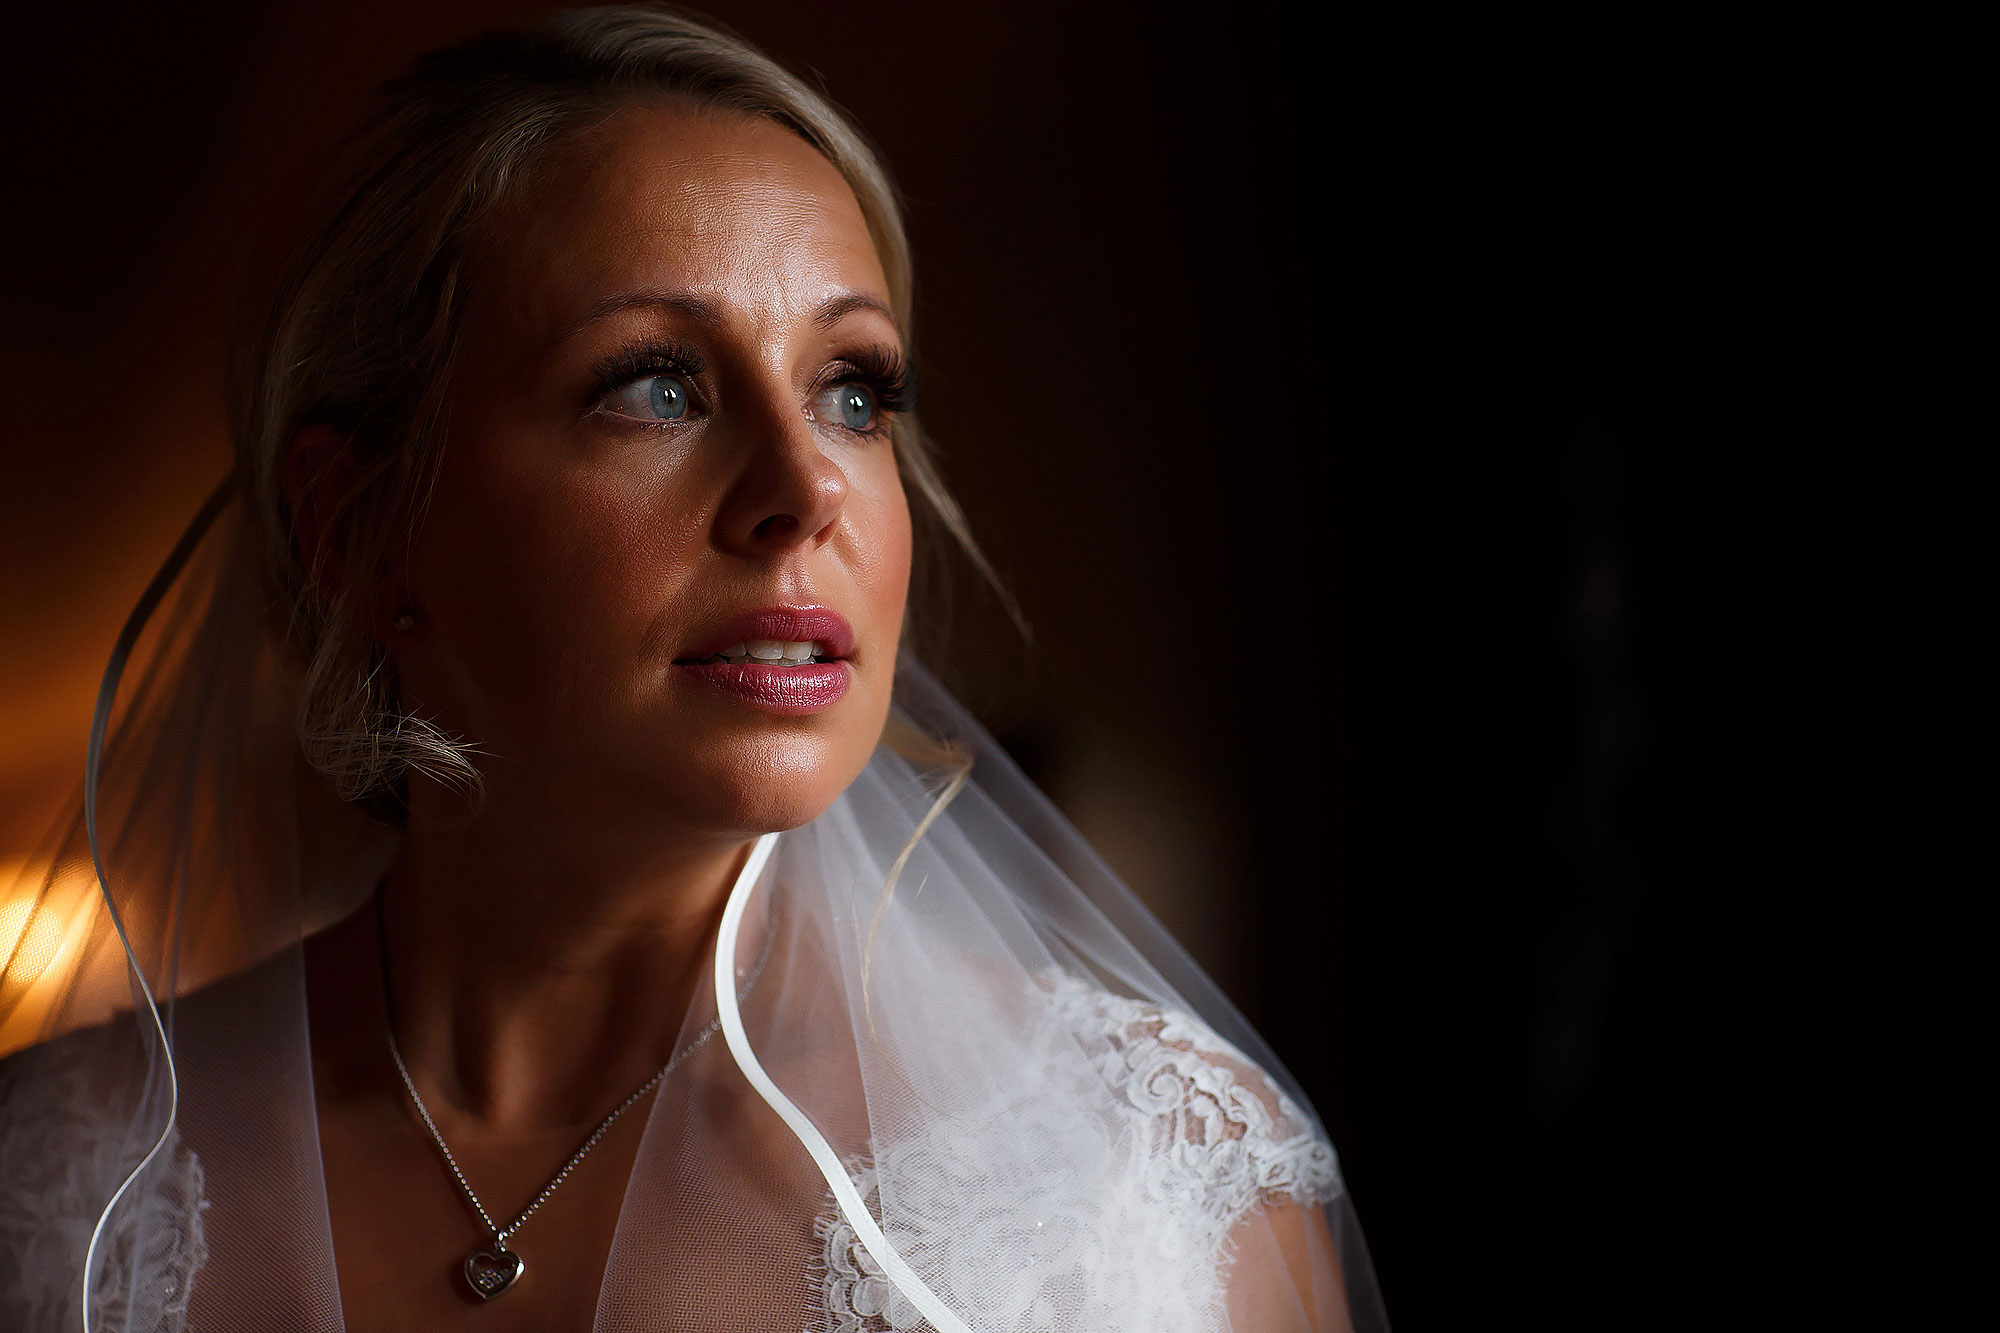 Bride with big blue eyes and blonde hair looking emotional as veil caps shoulders | Peckforton Castle Wedding by Toni Darcy Photography